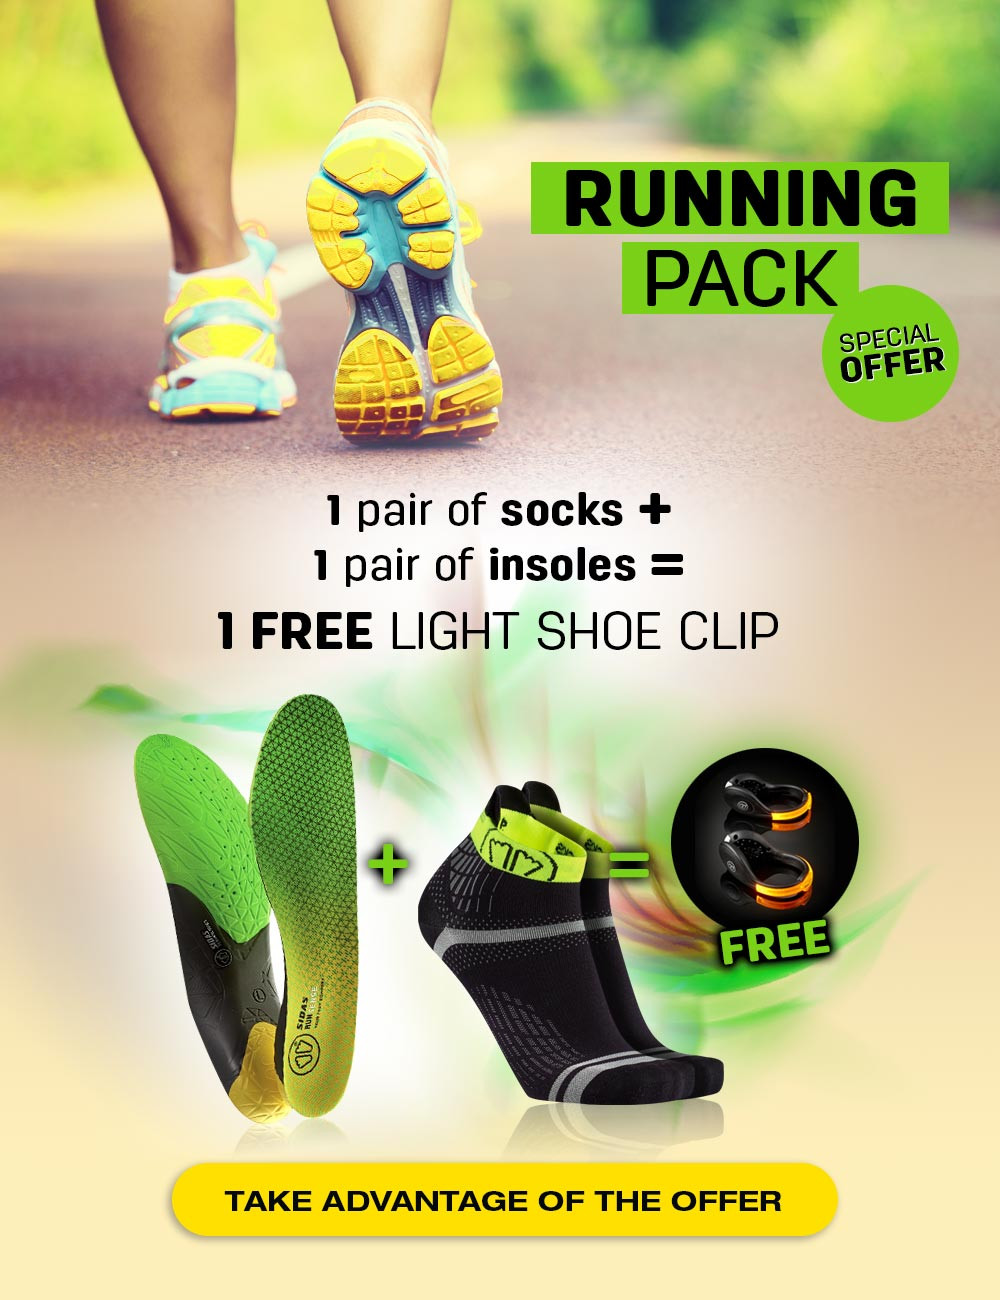 Special offer : 1 pair of running sock + 1 pair of running insoles = your FREE light shoe clip!